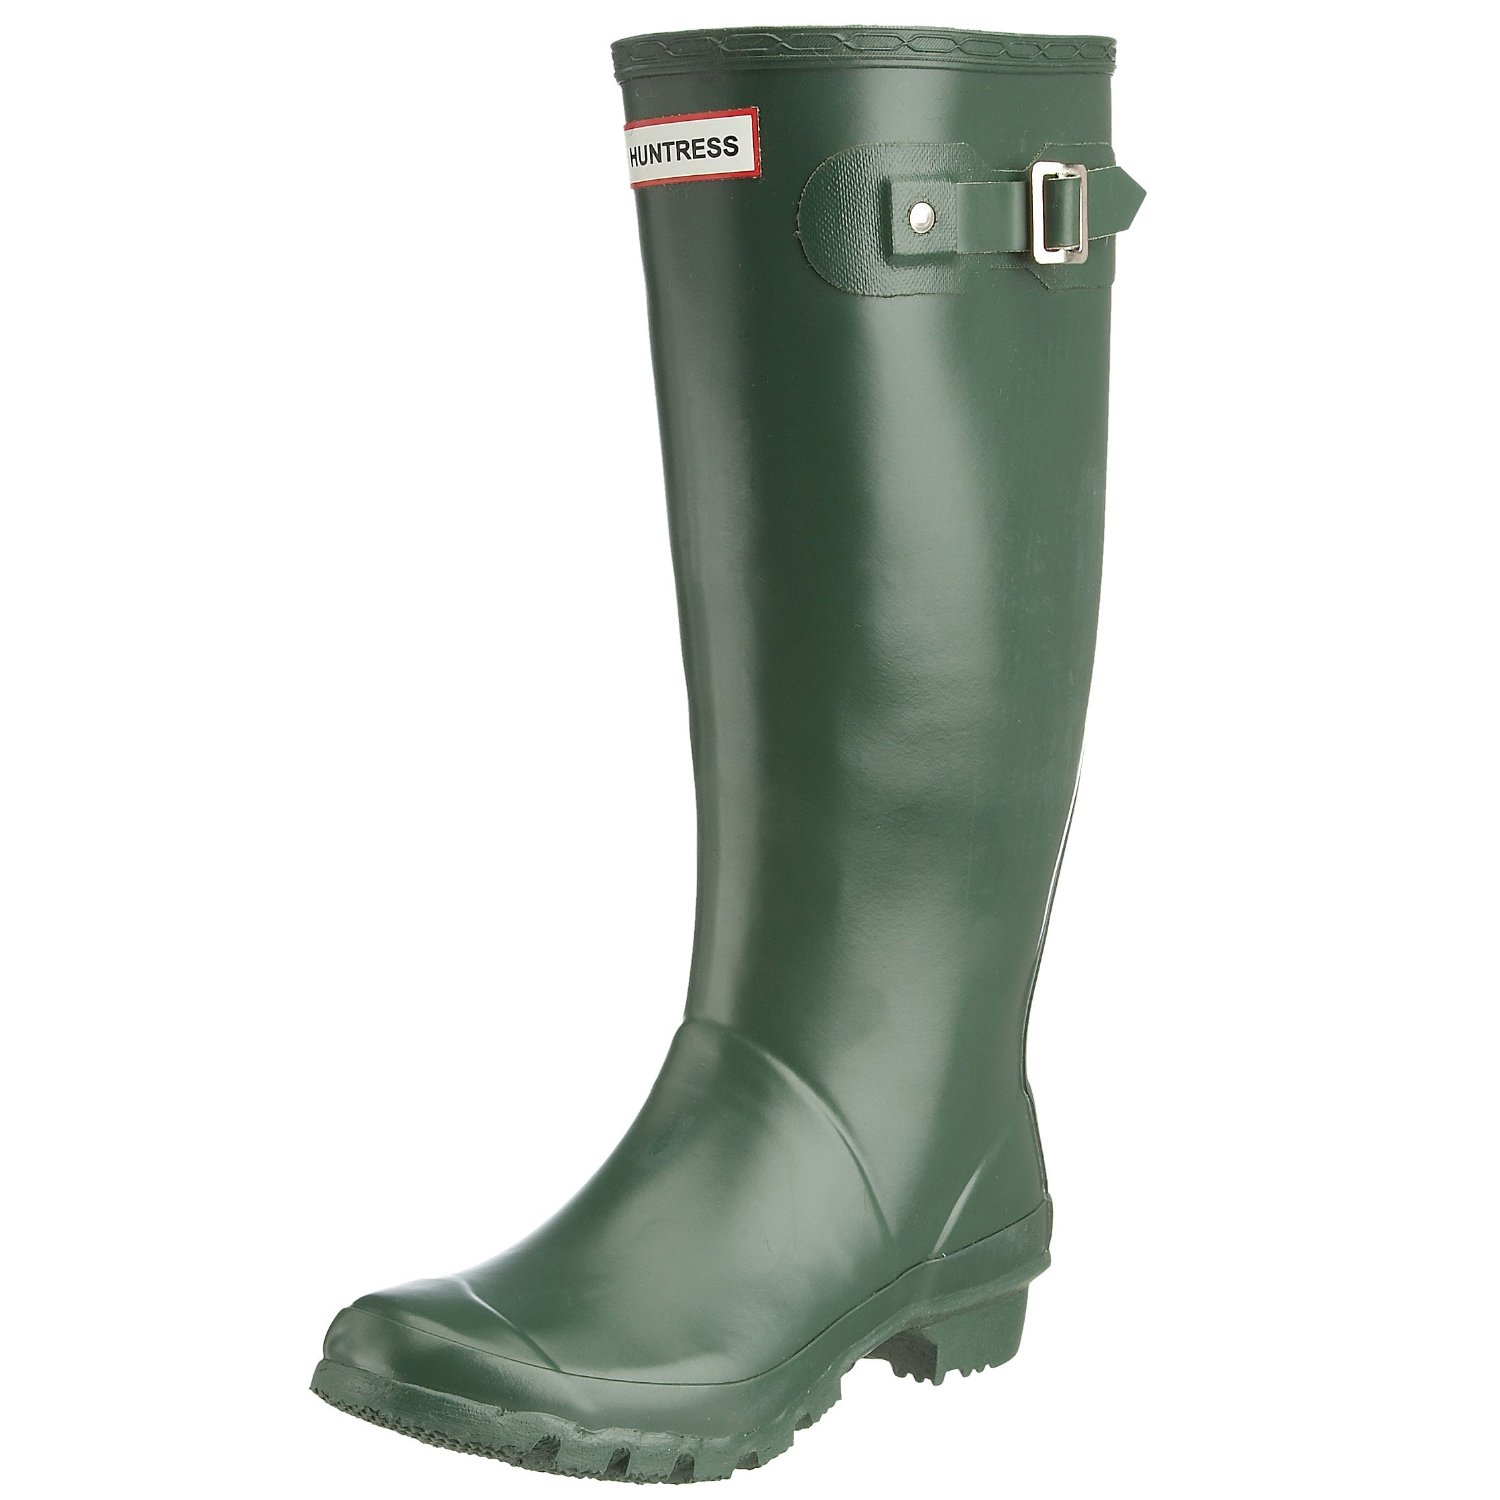 Model Best Hunter Rain Boots Size 38 European With Hunter Socks For Sale In